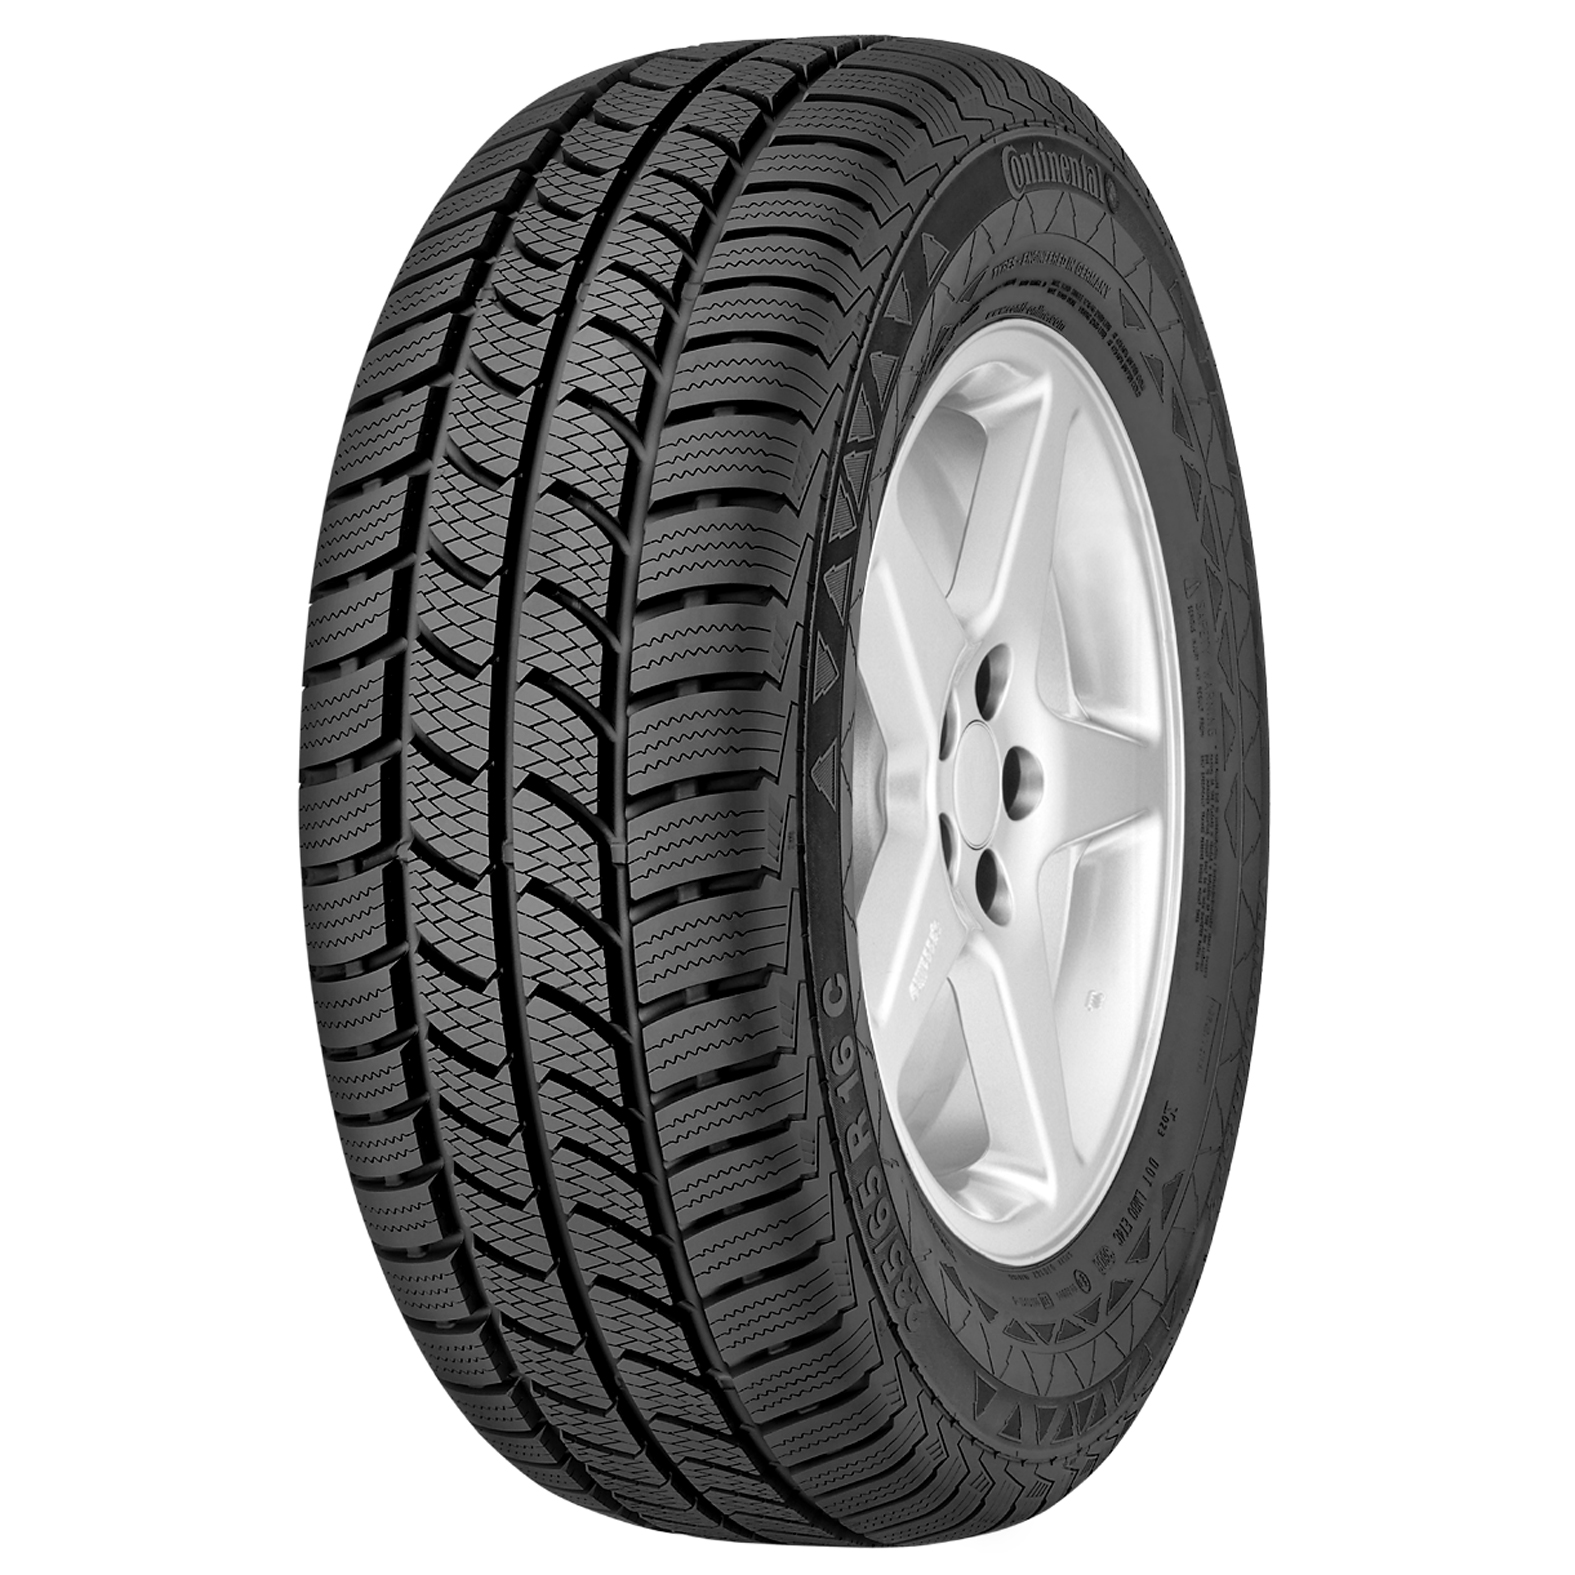 Continental VANCO 2 tire - angle